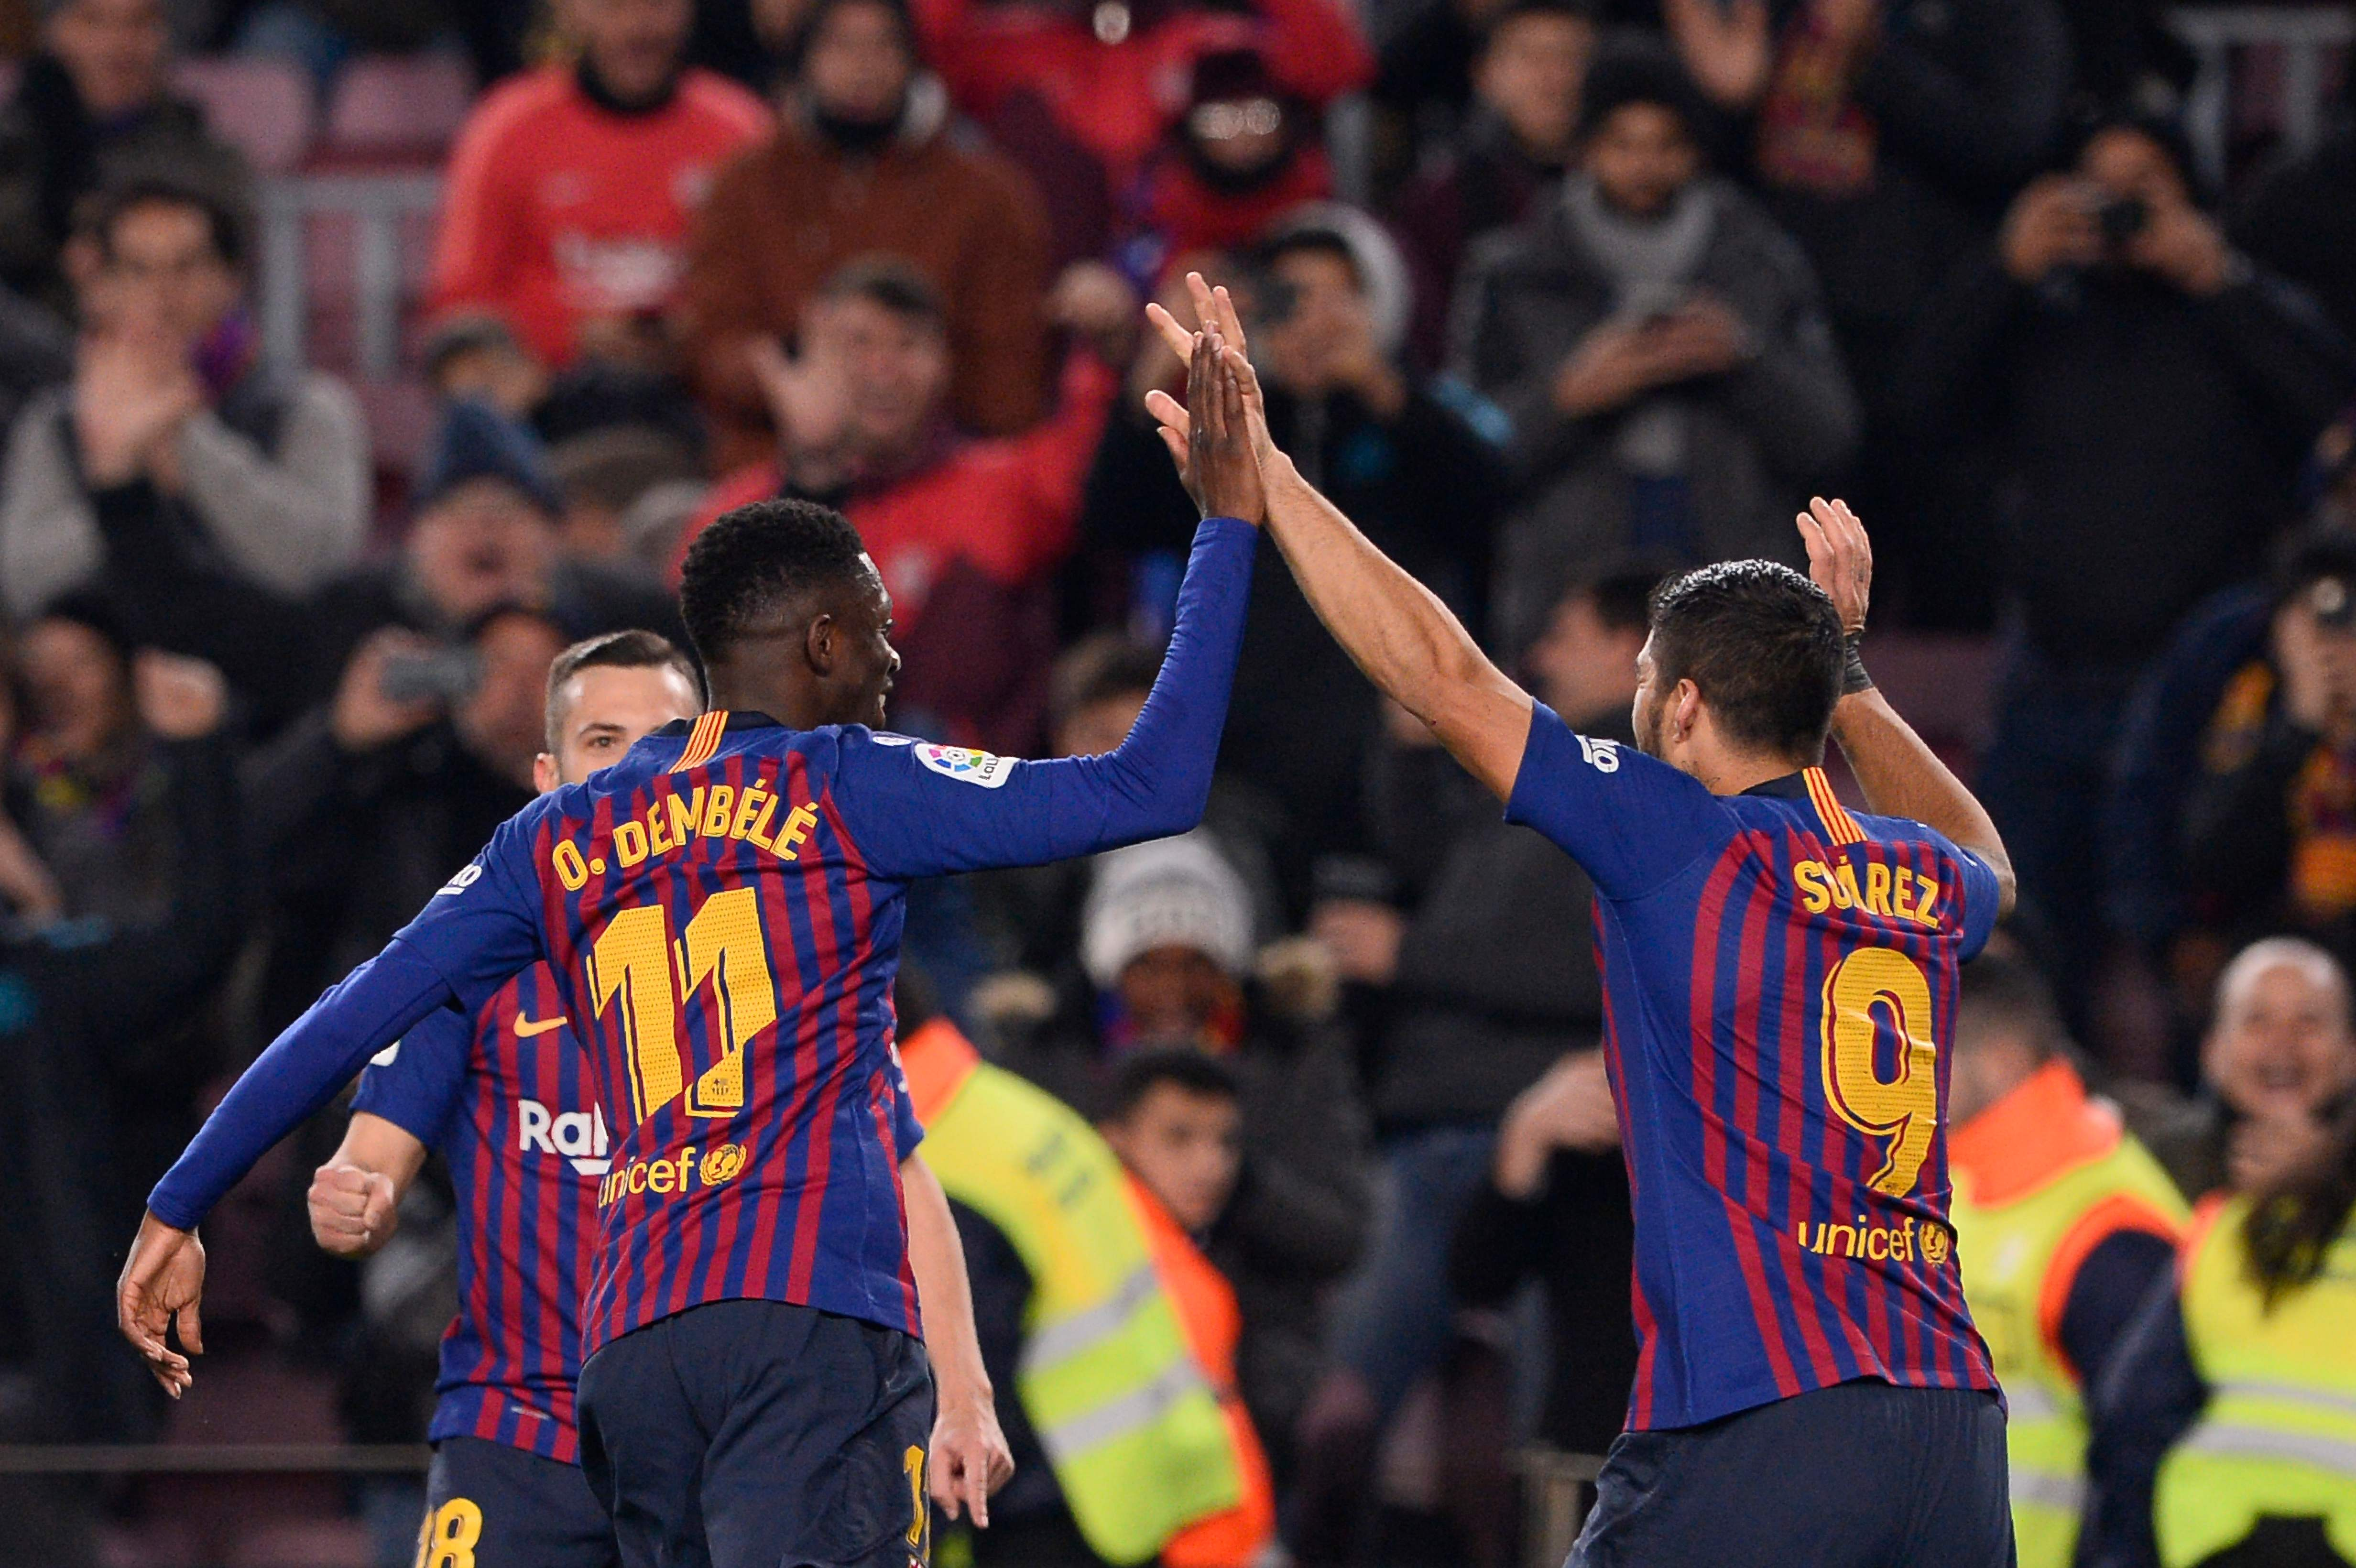 Barcelona's French forward Ousmane Dembele (C) celebrates with Barcelona's Uruguayan forward Luis Suarez after scoring during the Spanish League football match between Barcelona and Leganes at the Camp Nou stadium in Barcelona on January 20, 2019. (Photo by Josep LAGO / AFP)